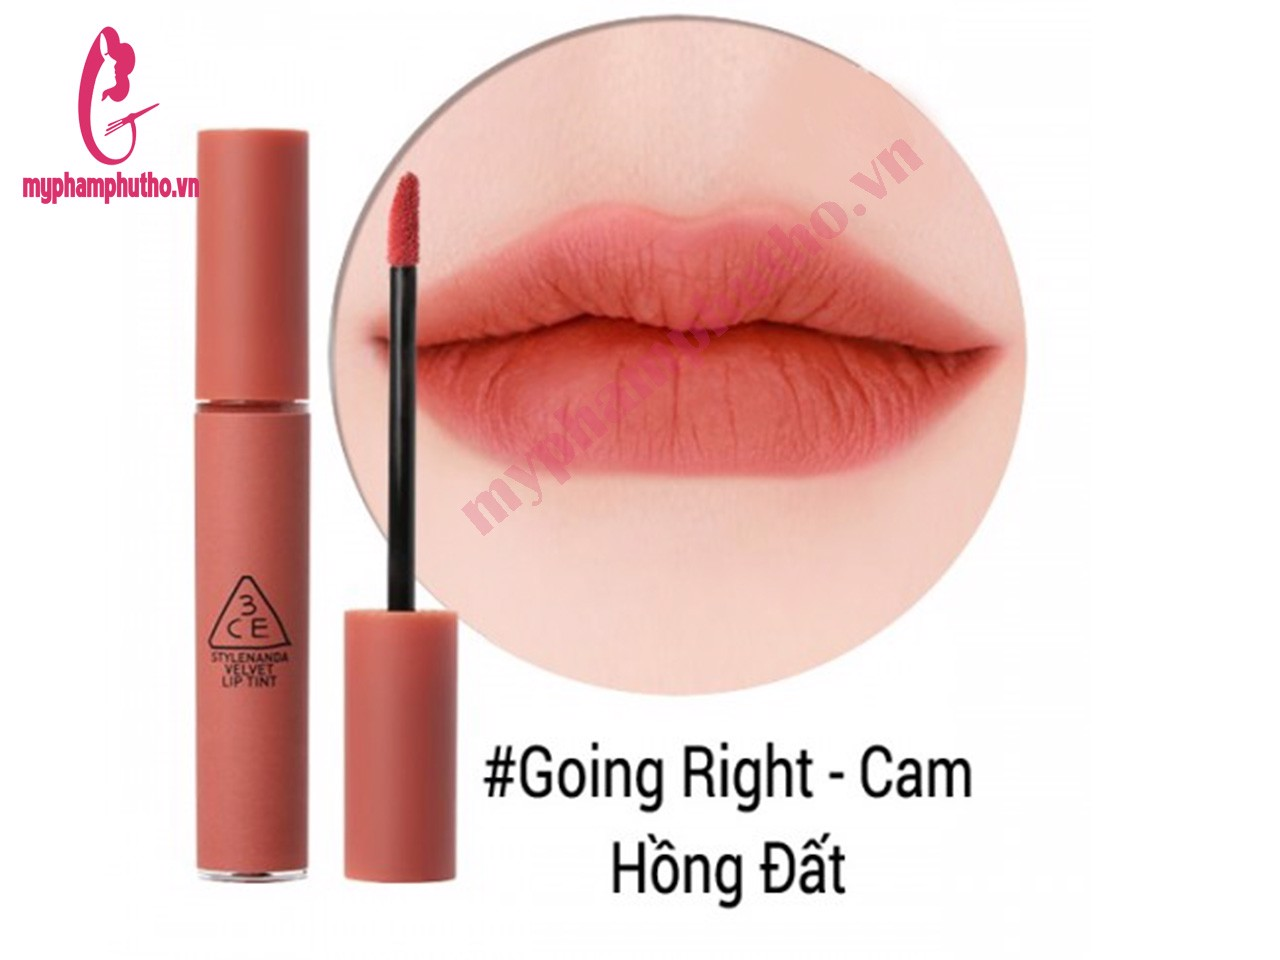 Son Kem Lì 3CE Velvet Lip Tint Màu GOING RIGHT